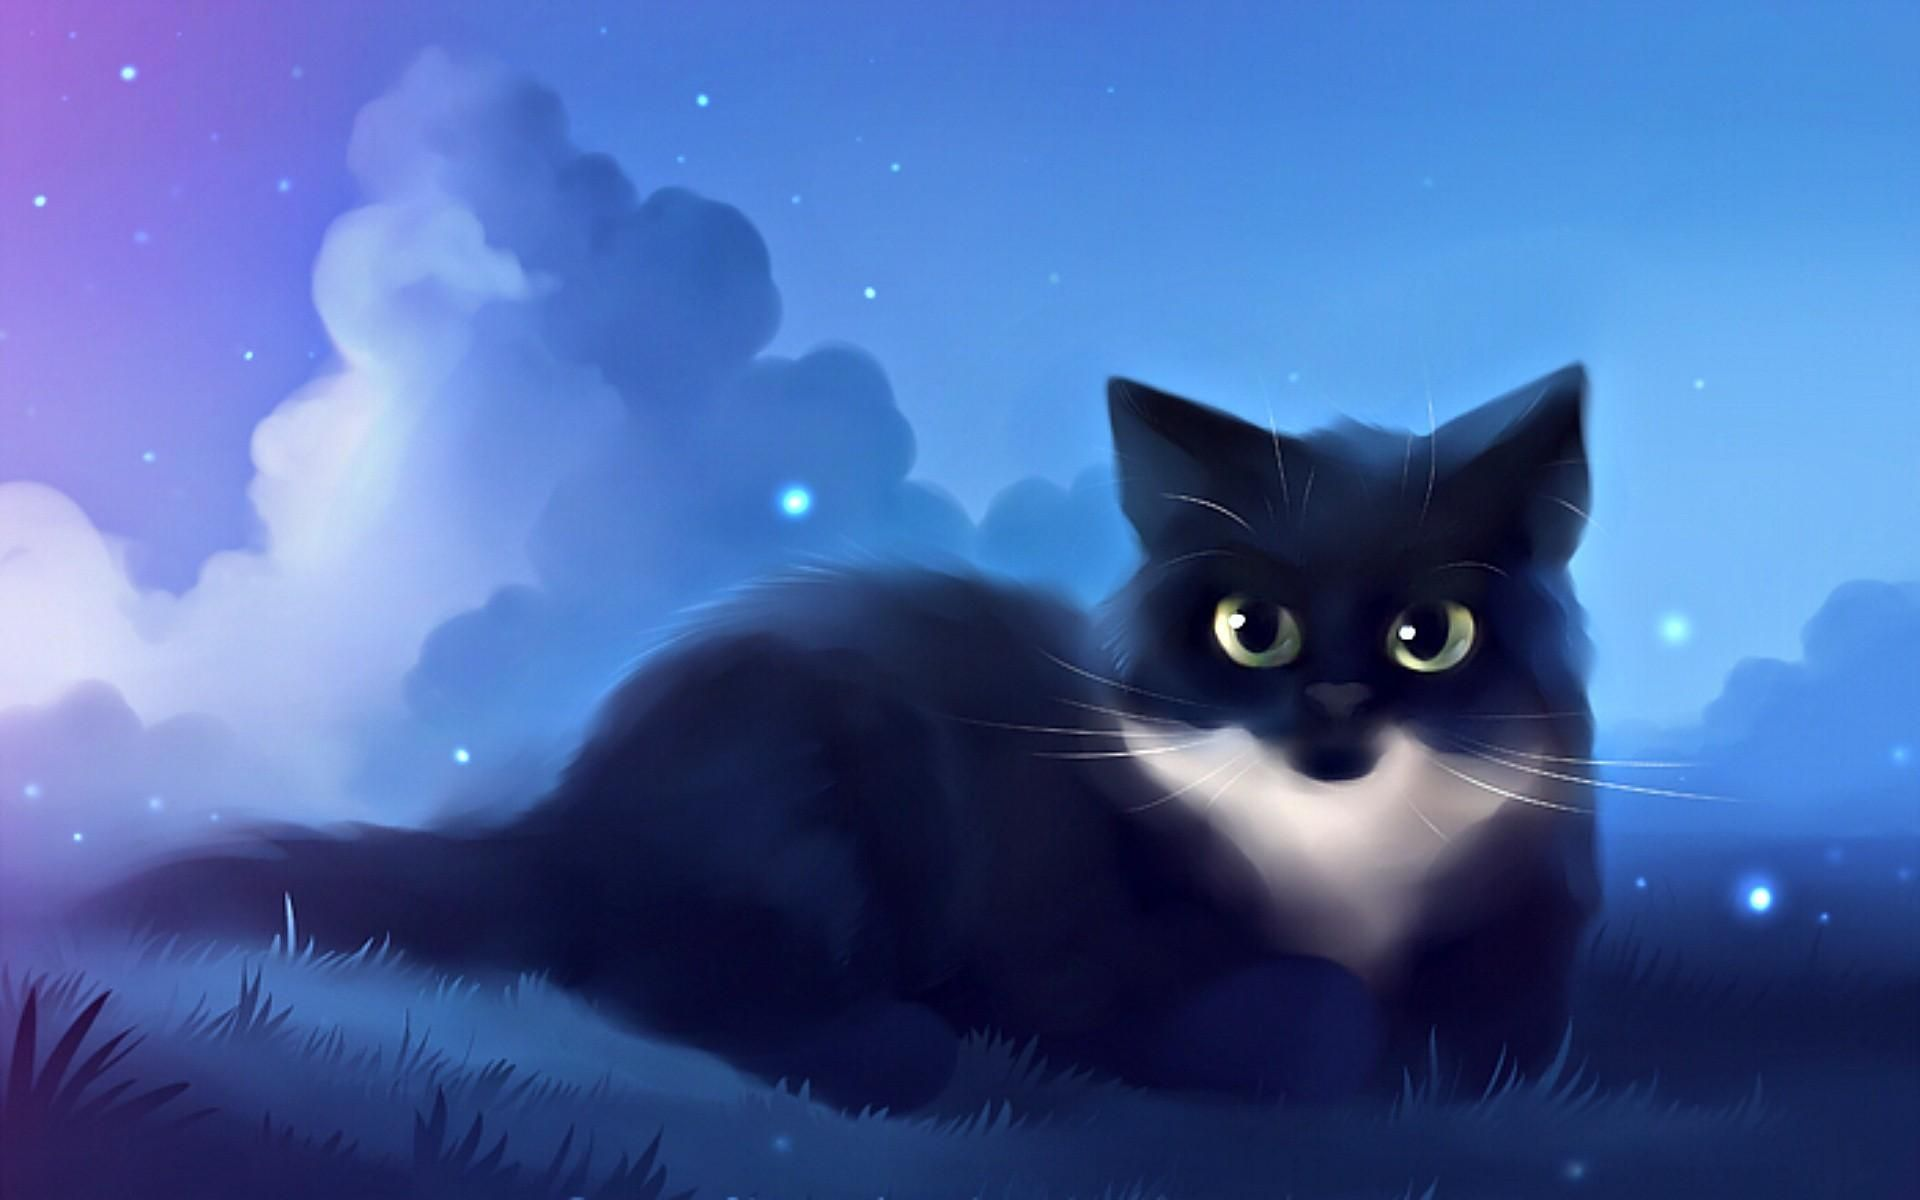 Cute Kitty Cat Anime Wallpapers Wallpaper Cavecute Cat Wallpaper Anime Cute Cat Wallpaper Anime Cute Anim In 2021 Cute Anime Cat Cute Cat Wallpaper Anime Cat